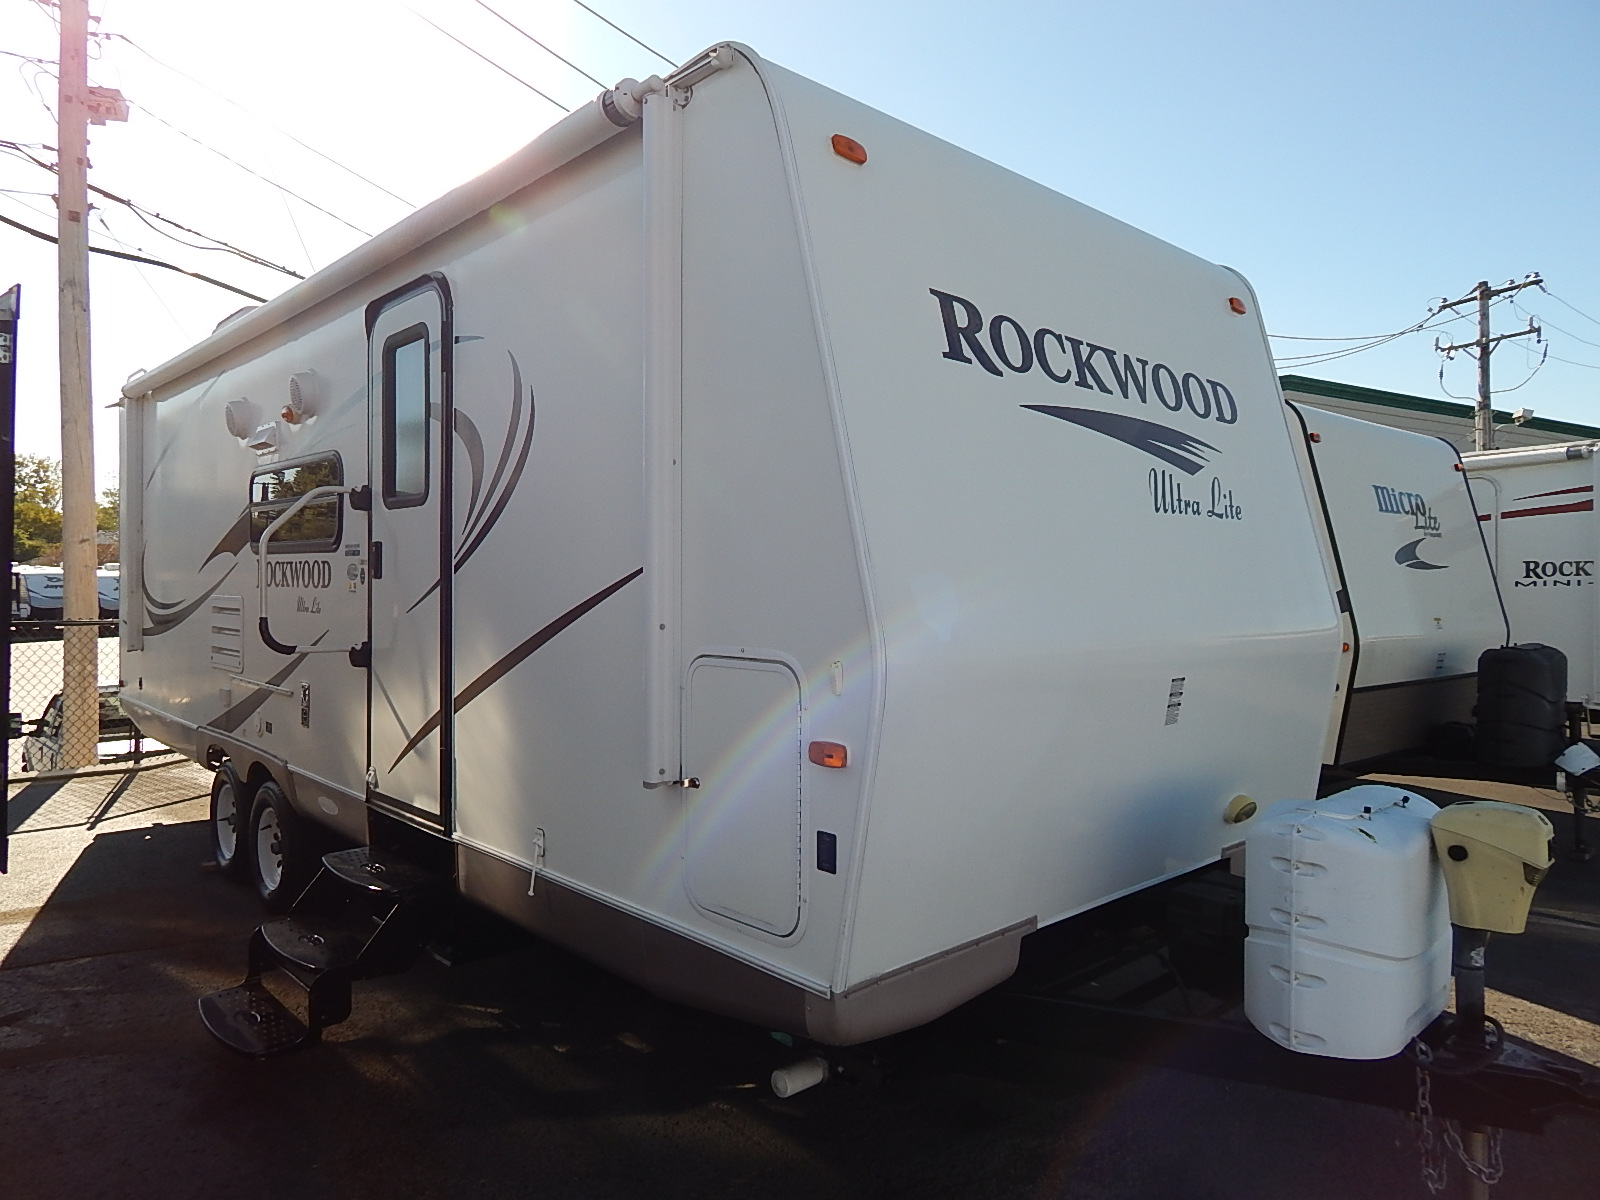 USED 2011 Rockwood ULTRA LIGHT 2501SS - Rick's RV Center